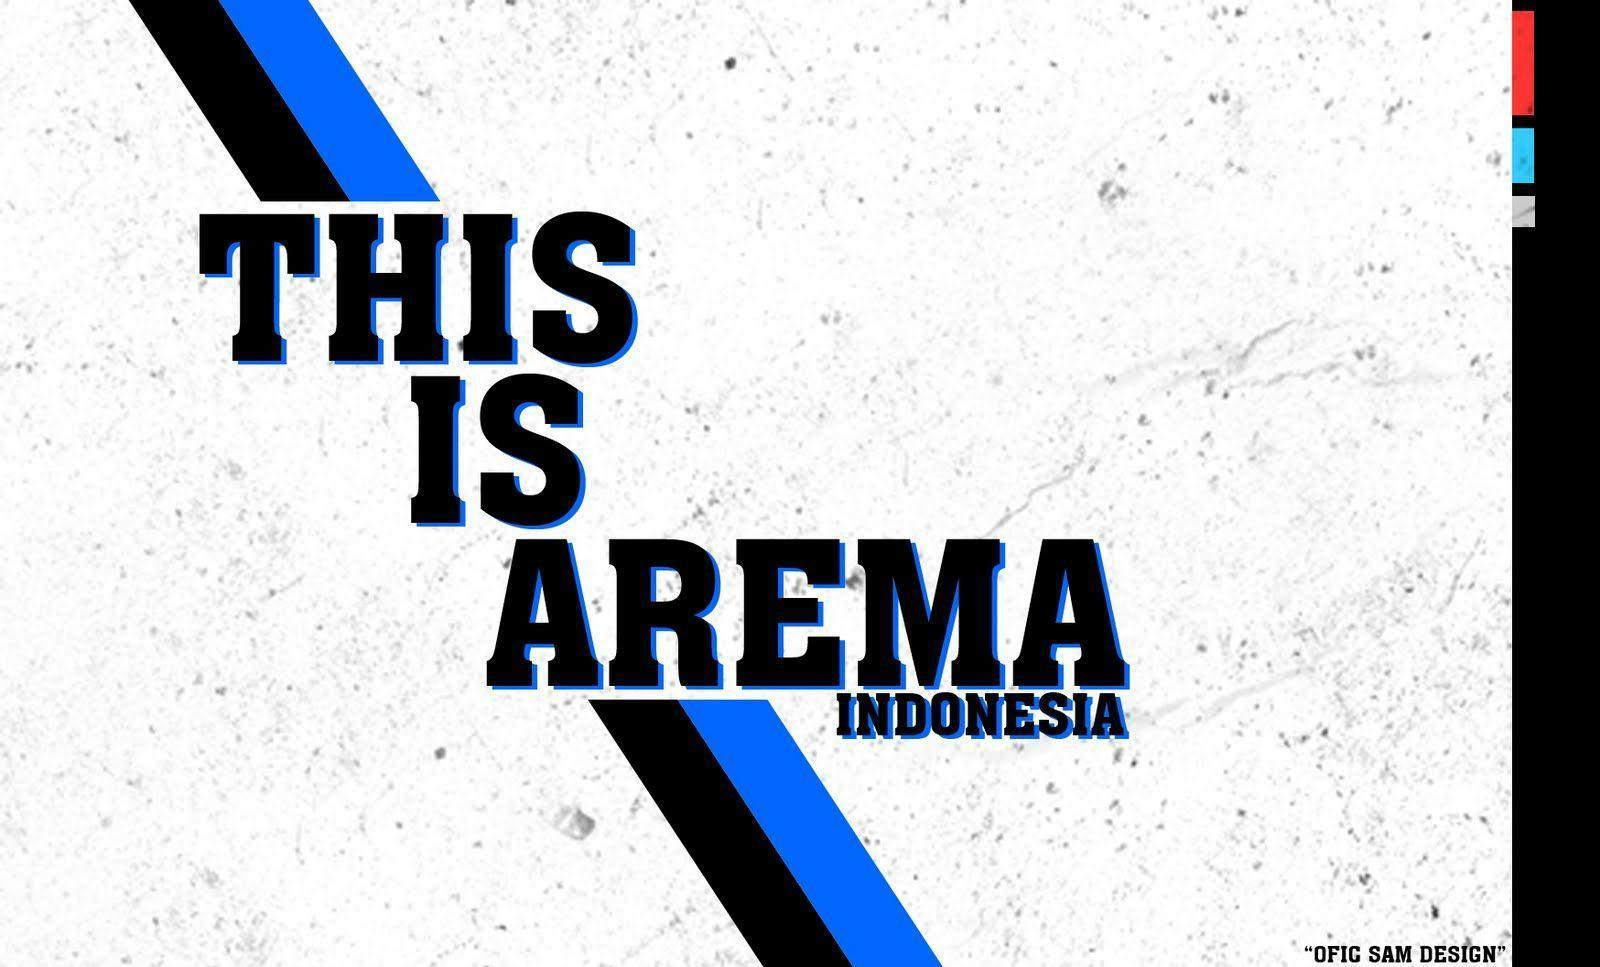 Arema HD Wallpaper 2019 For Android APK Download